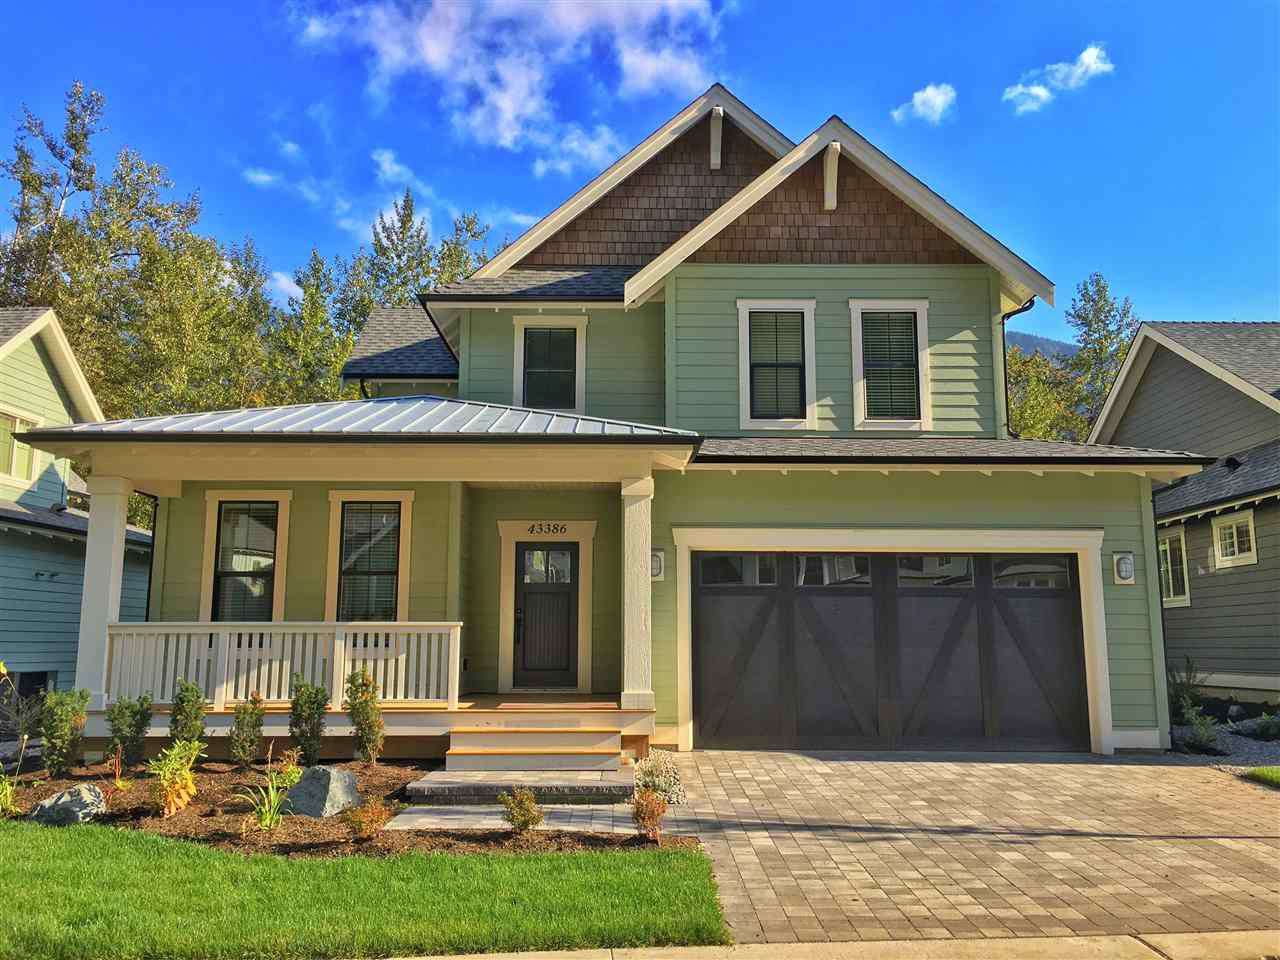 """Main Photo: 43386 WATER MILL Way in Cultus Lake: Columbia Valley House for sale in """"CREEKSIDE MILLS AT CULTUS LAKE"""" : MLS®# R2309850"""